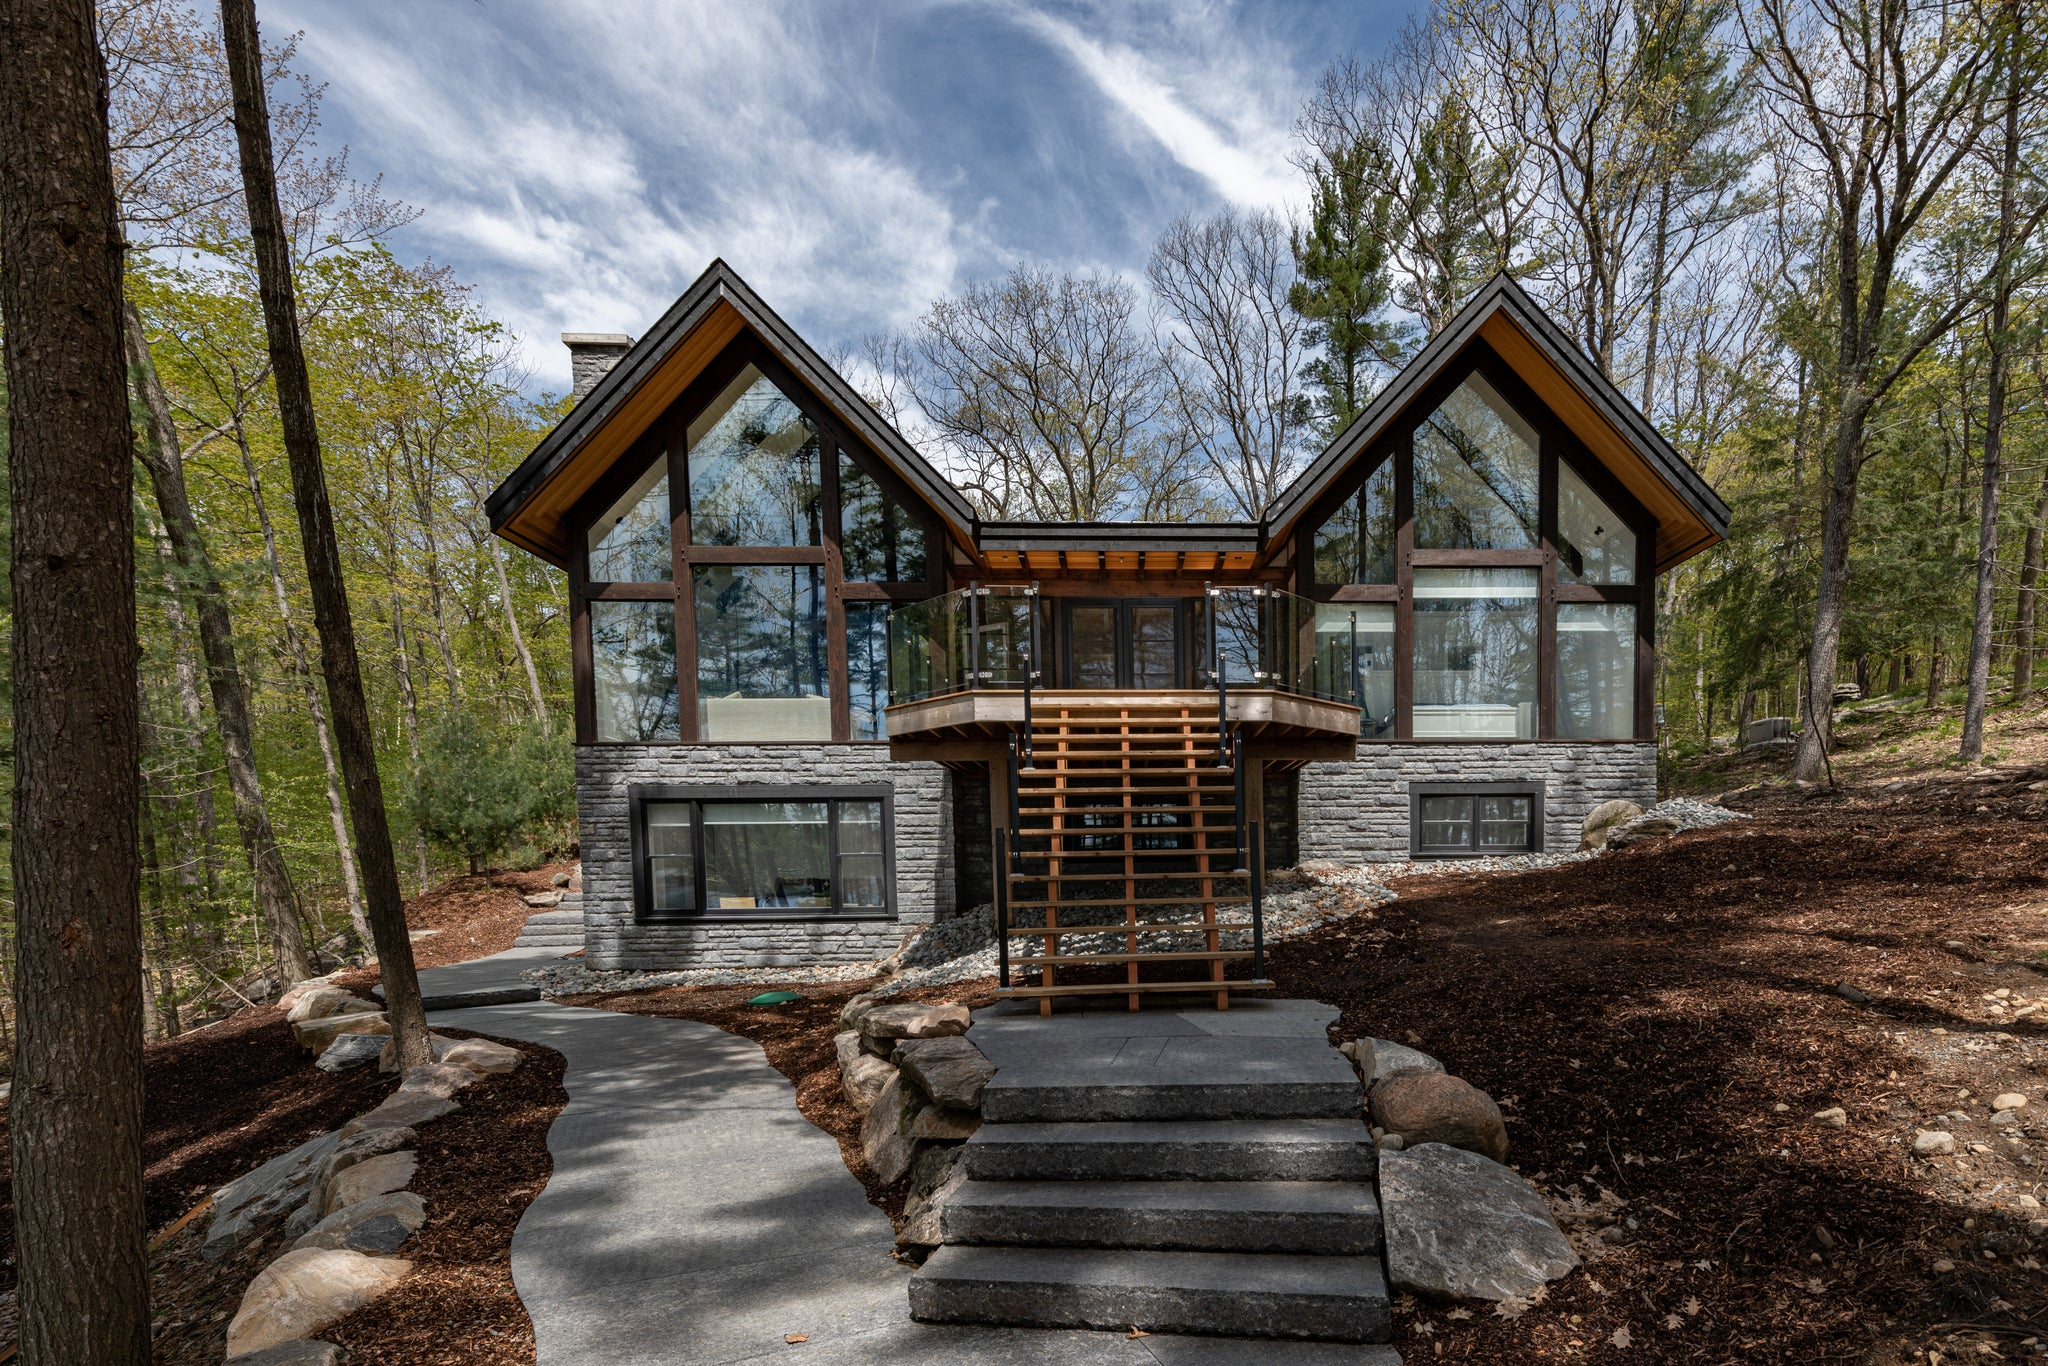 Lake muskoka cottage exterior